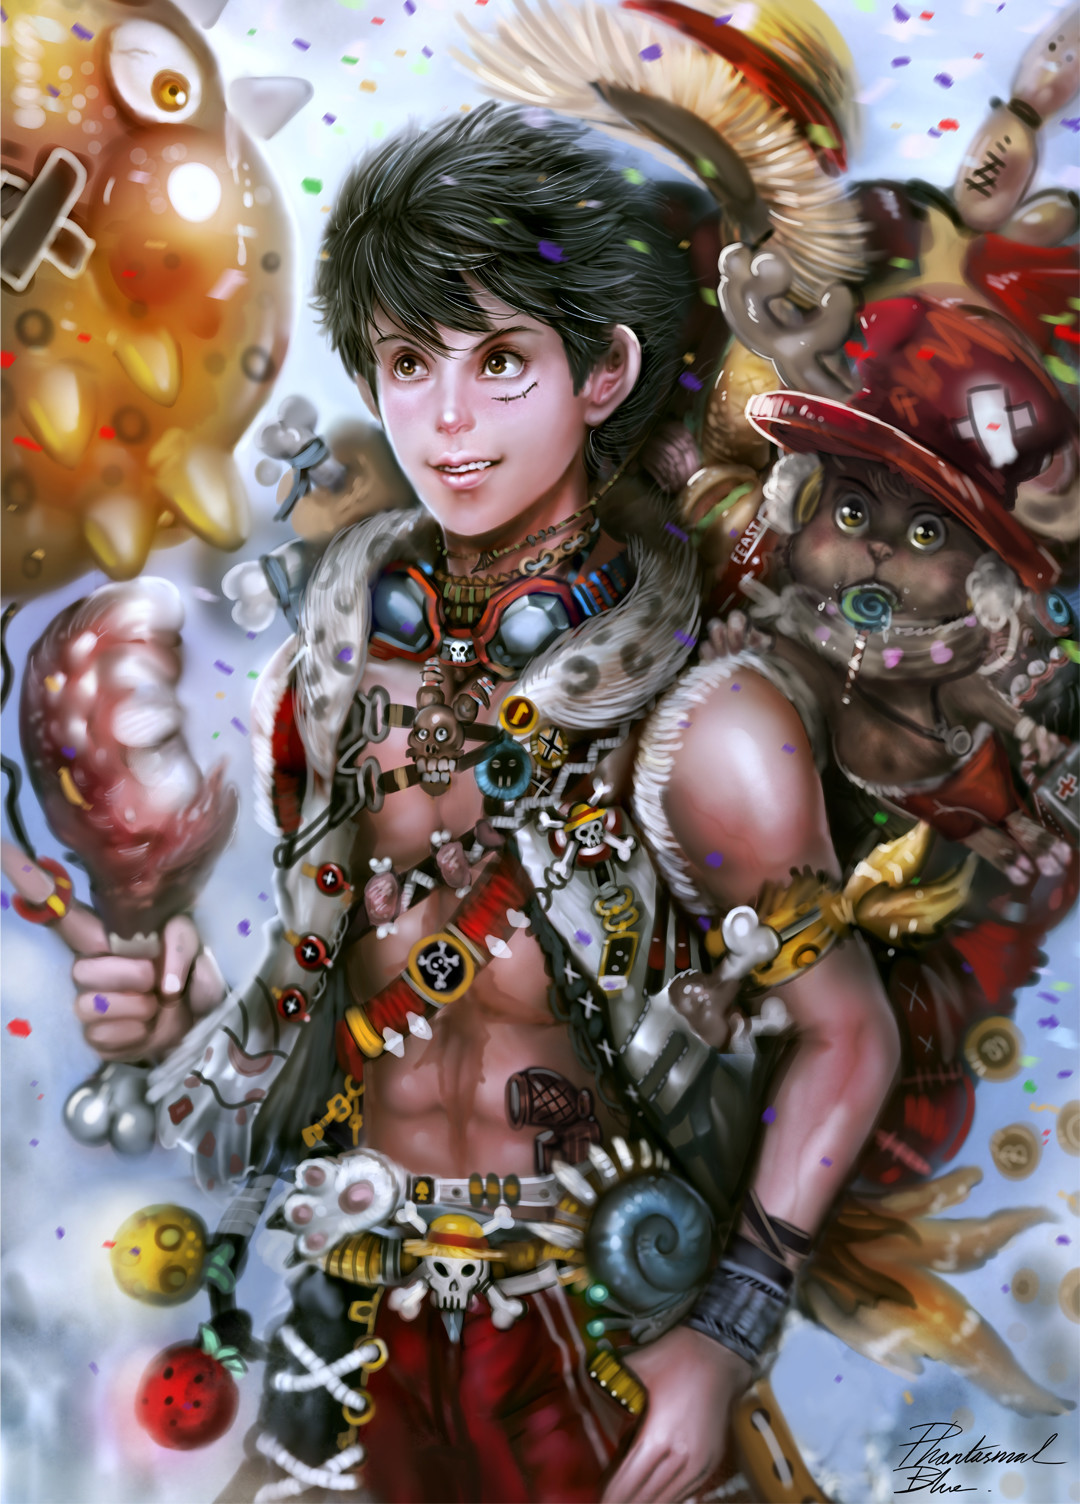 Julian tan luffy1080 by phantasmalblue dan20nb